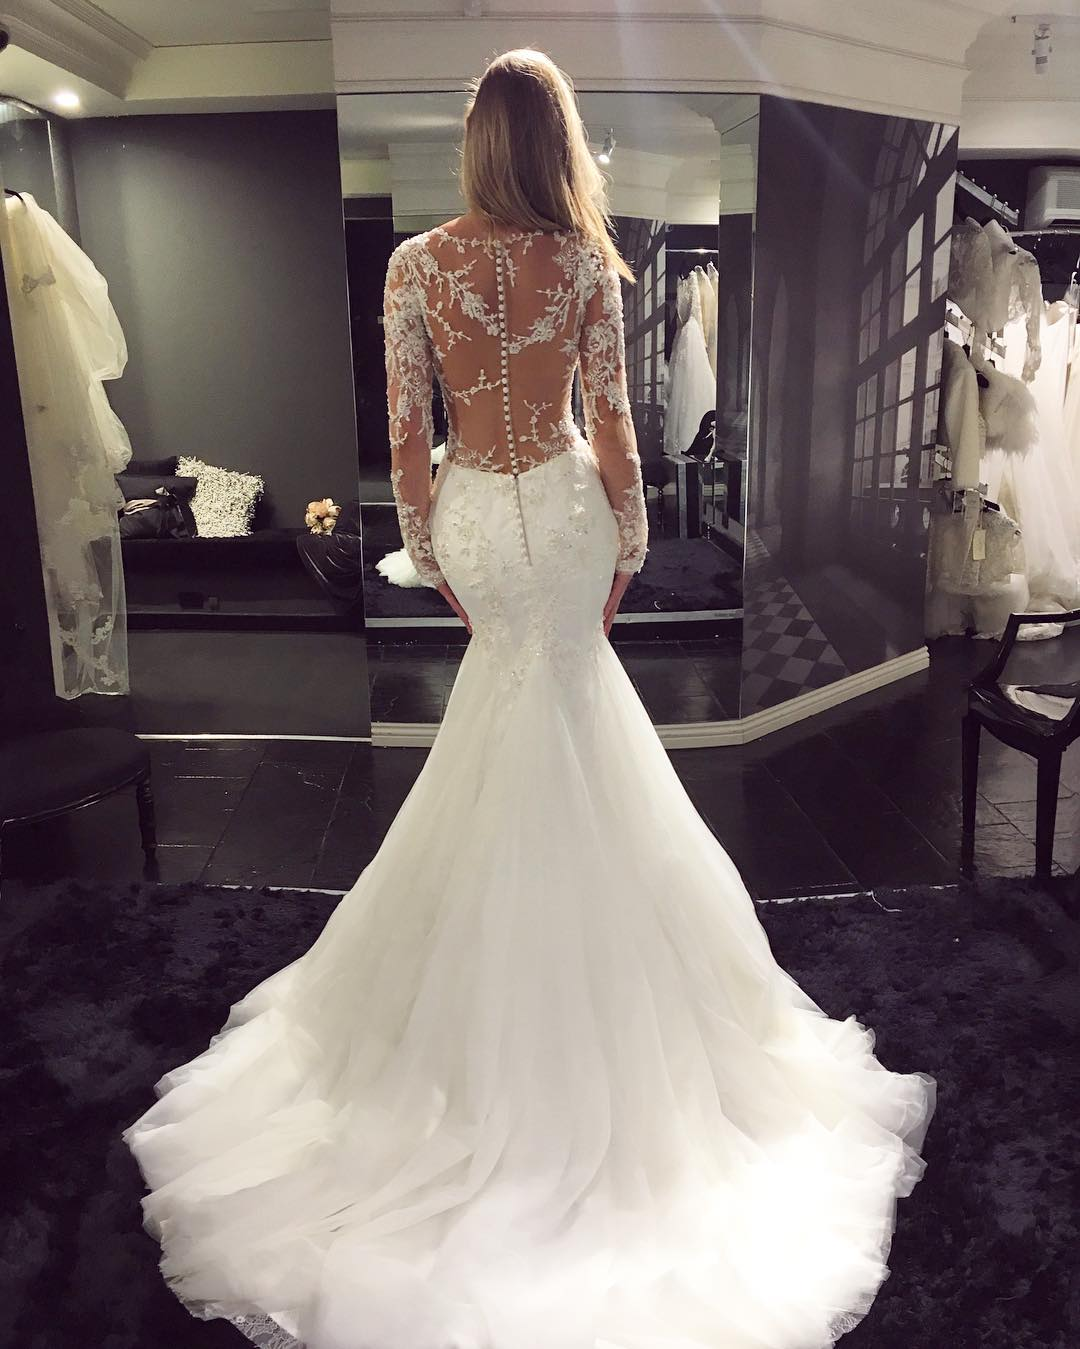 Mermaid Wedding Gowns With Sleeves: V-Neck Lace Appliqués Mermaid Wedding Dress With Long